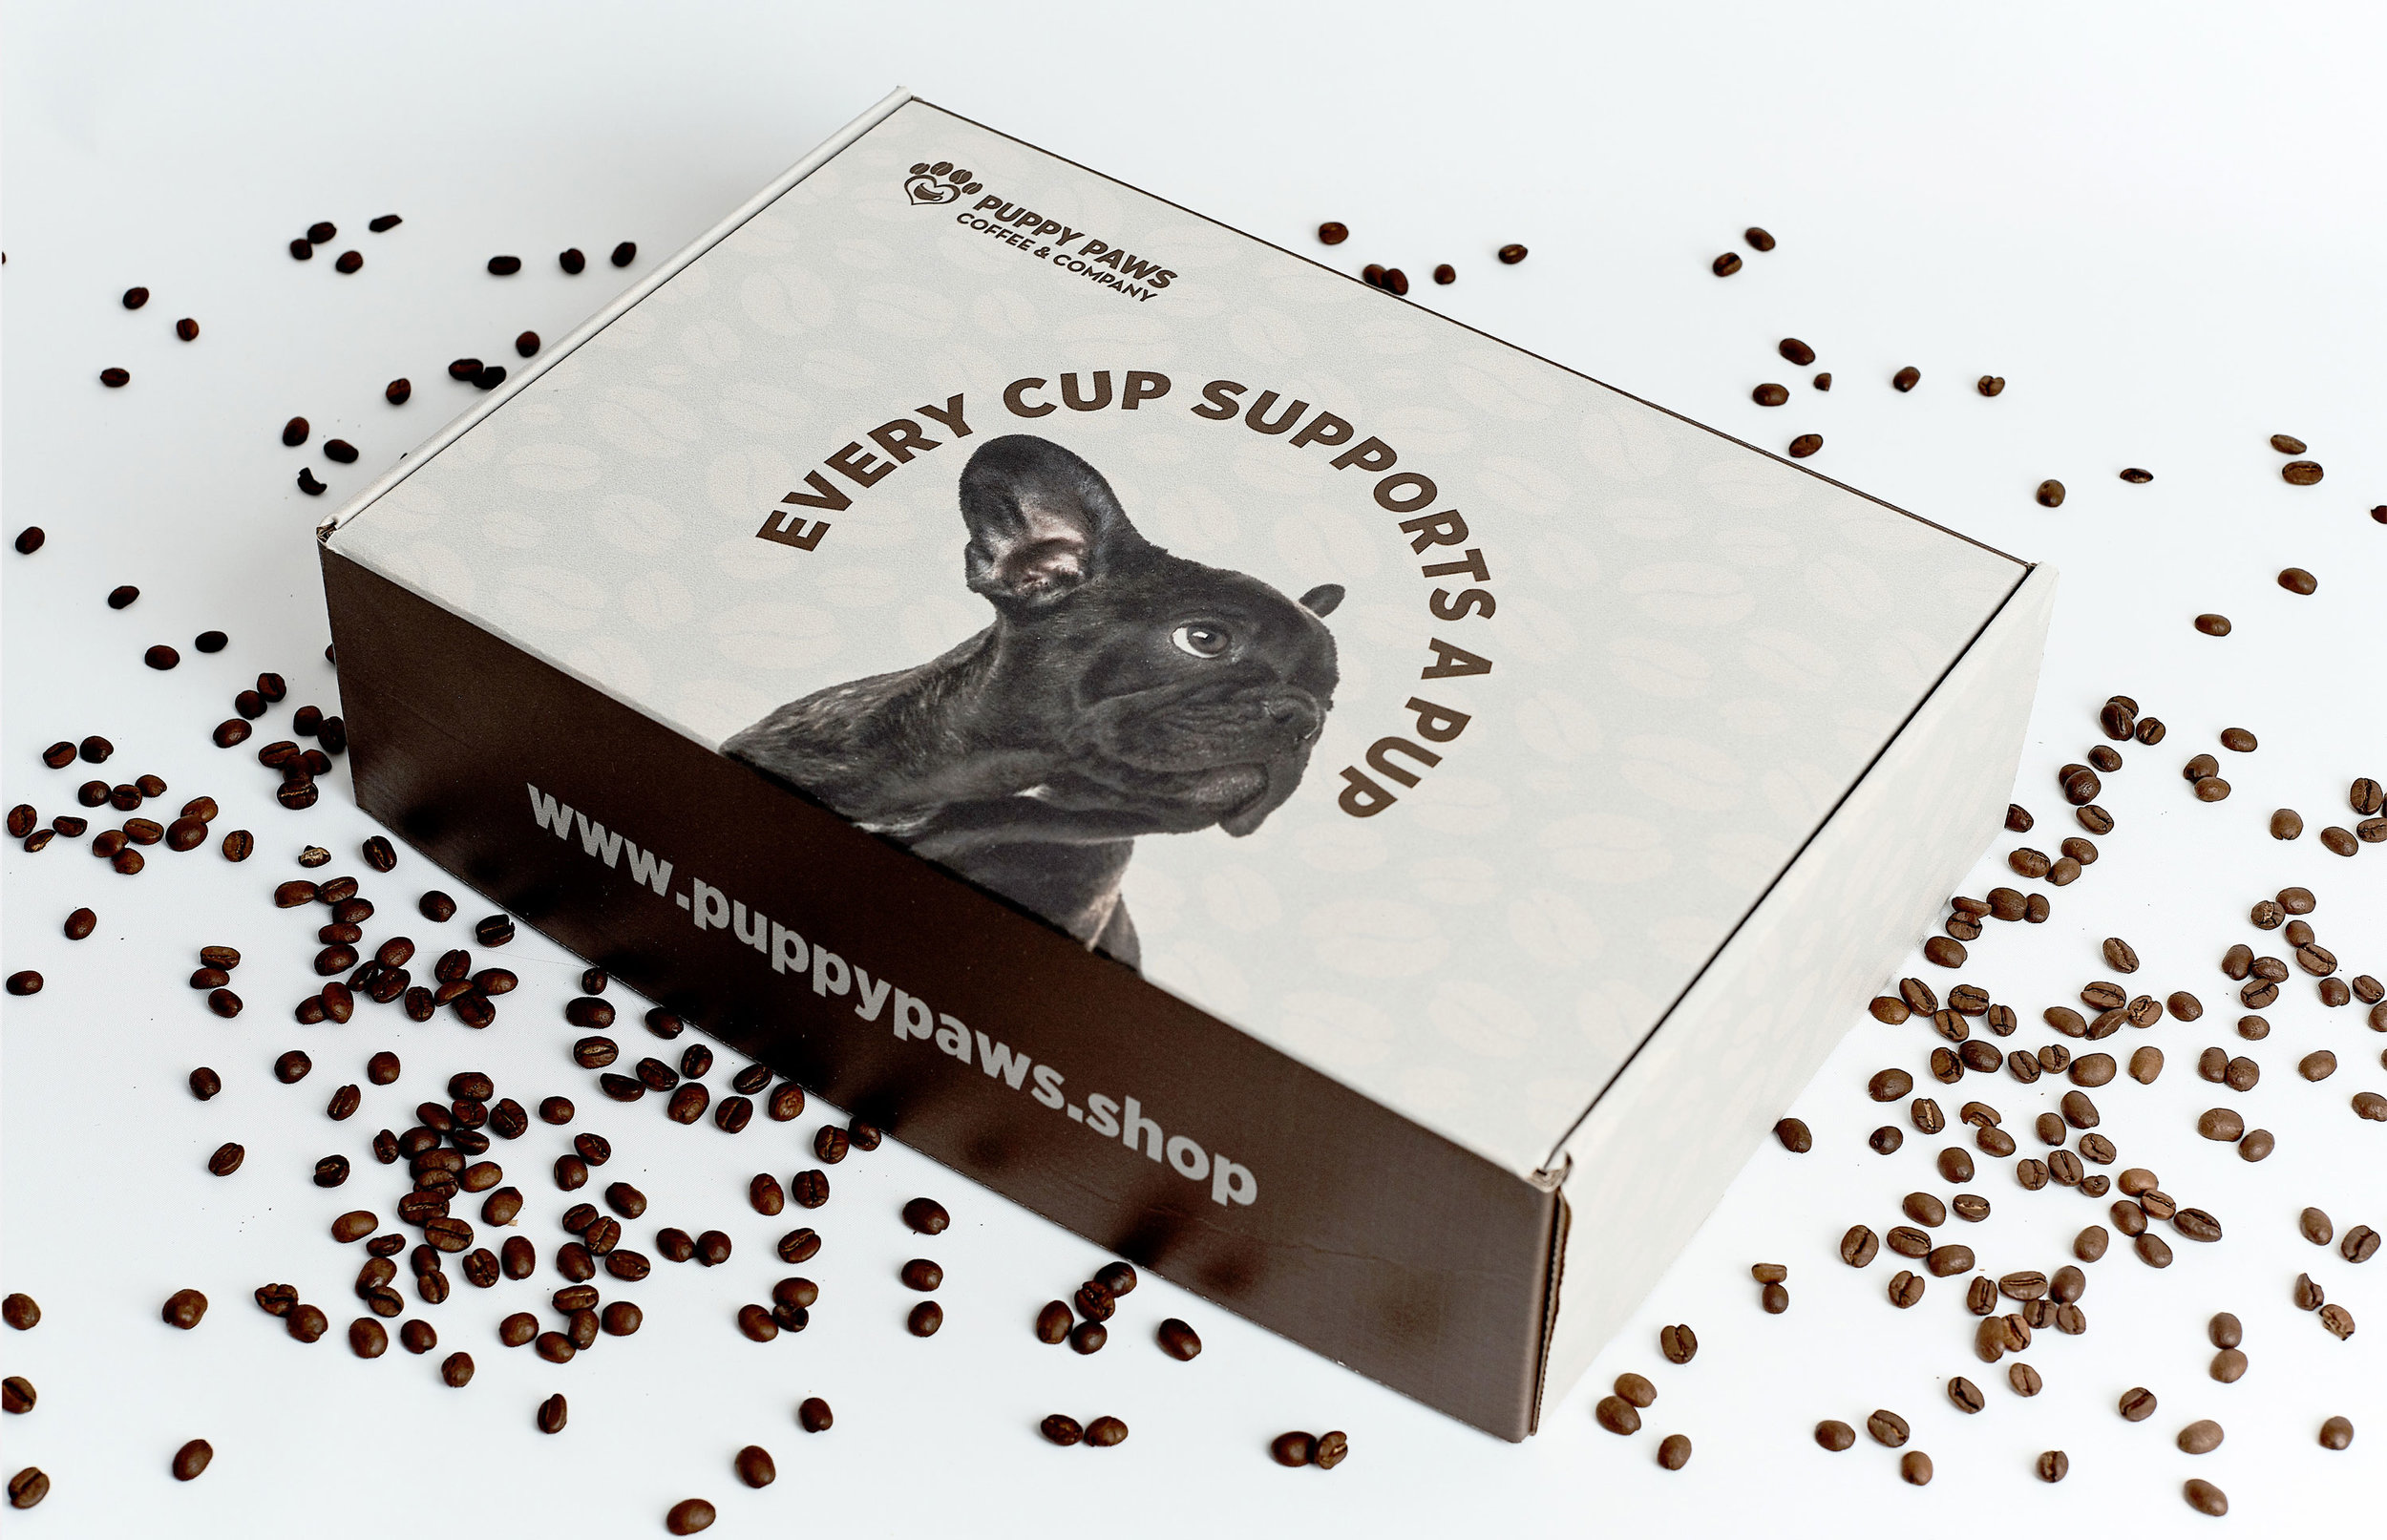 Furtastic Subscription Box and Packaging Design for Puppy Paws Coffee Company / World Brand Design Society